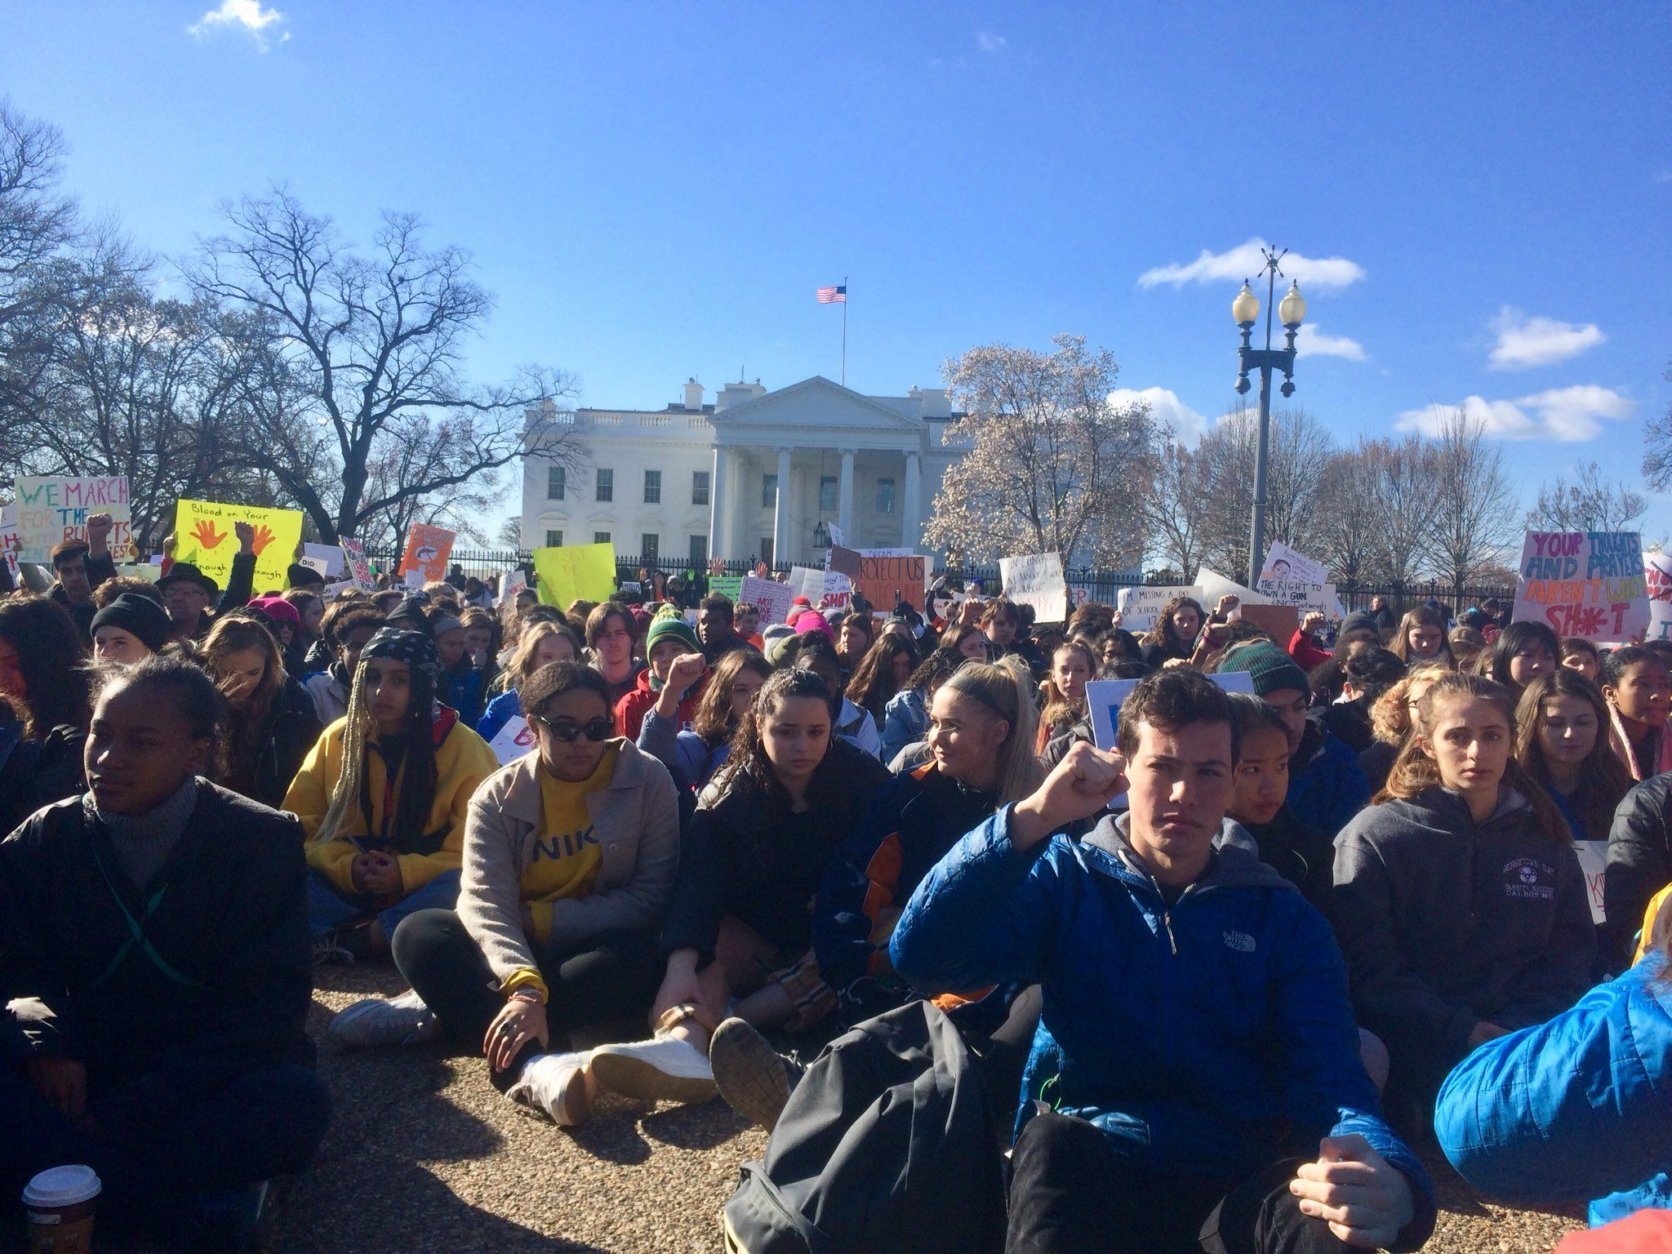 More than 28 D.C.-area schools are participated in the walkout. (WTOP/Nick Iannelli)